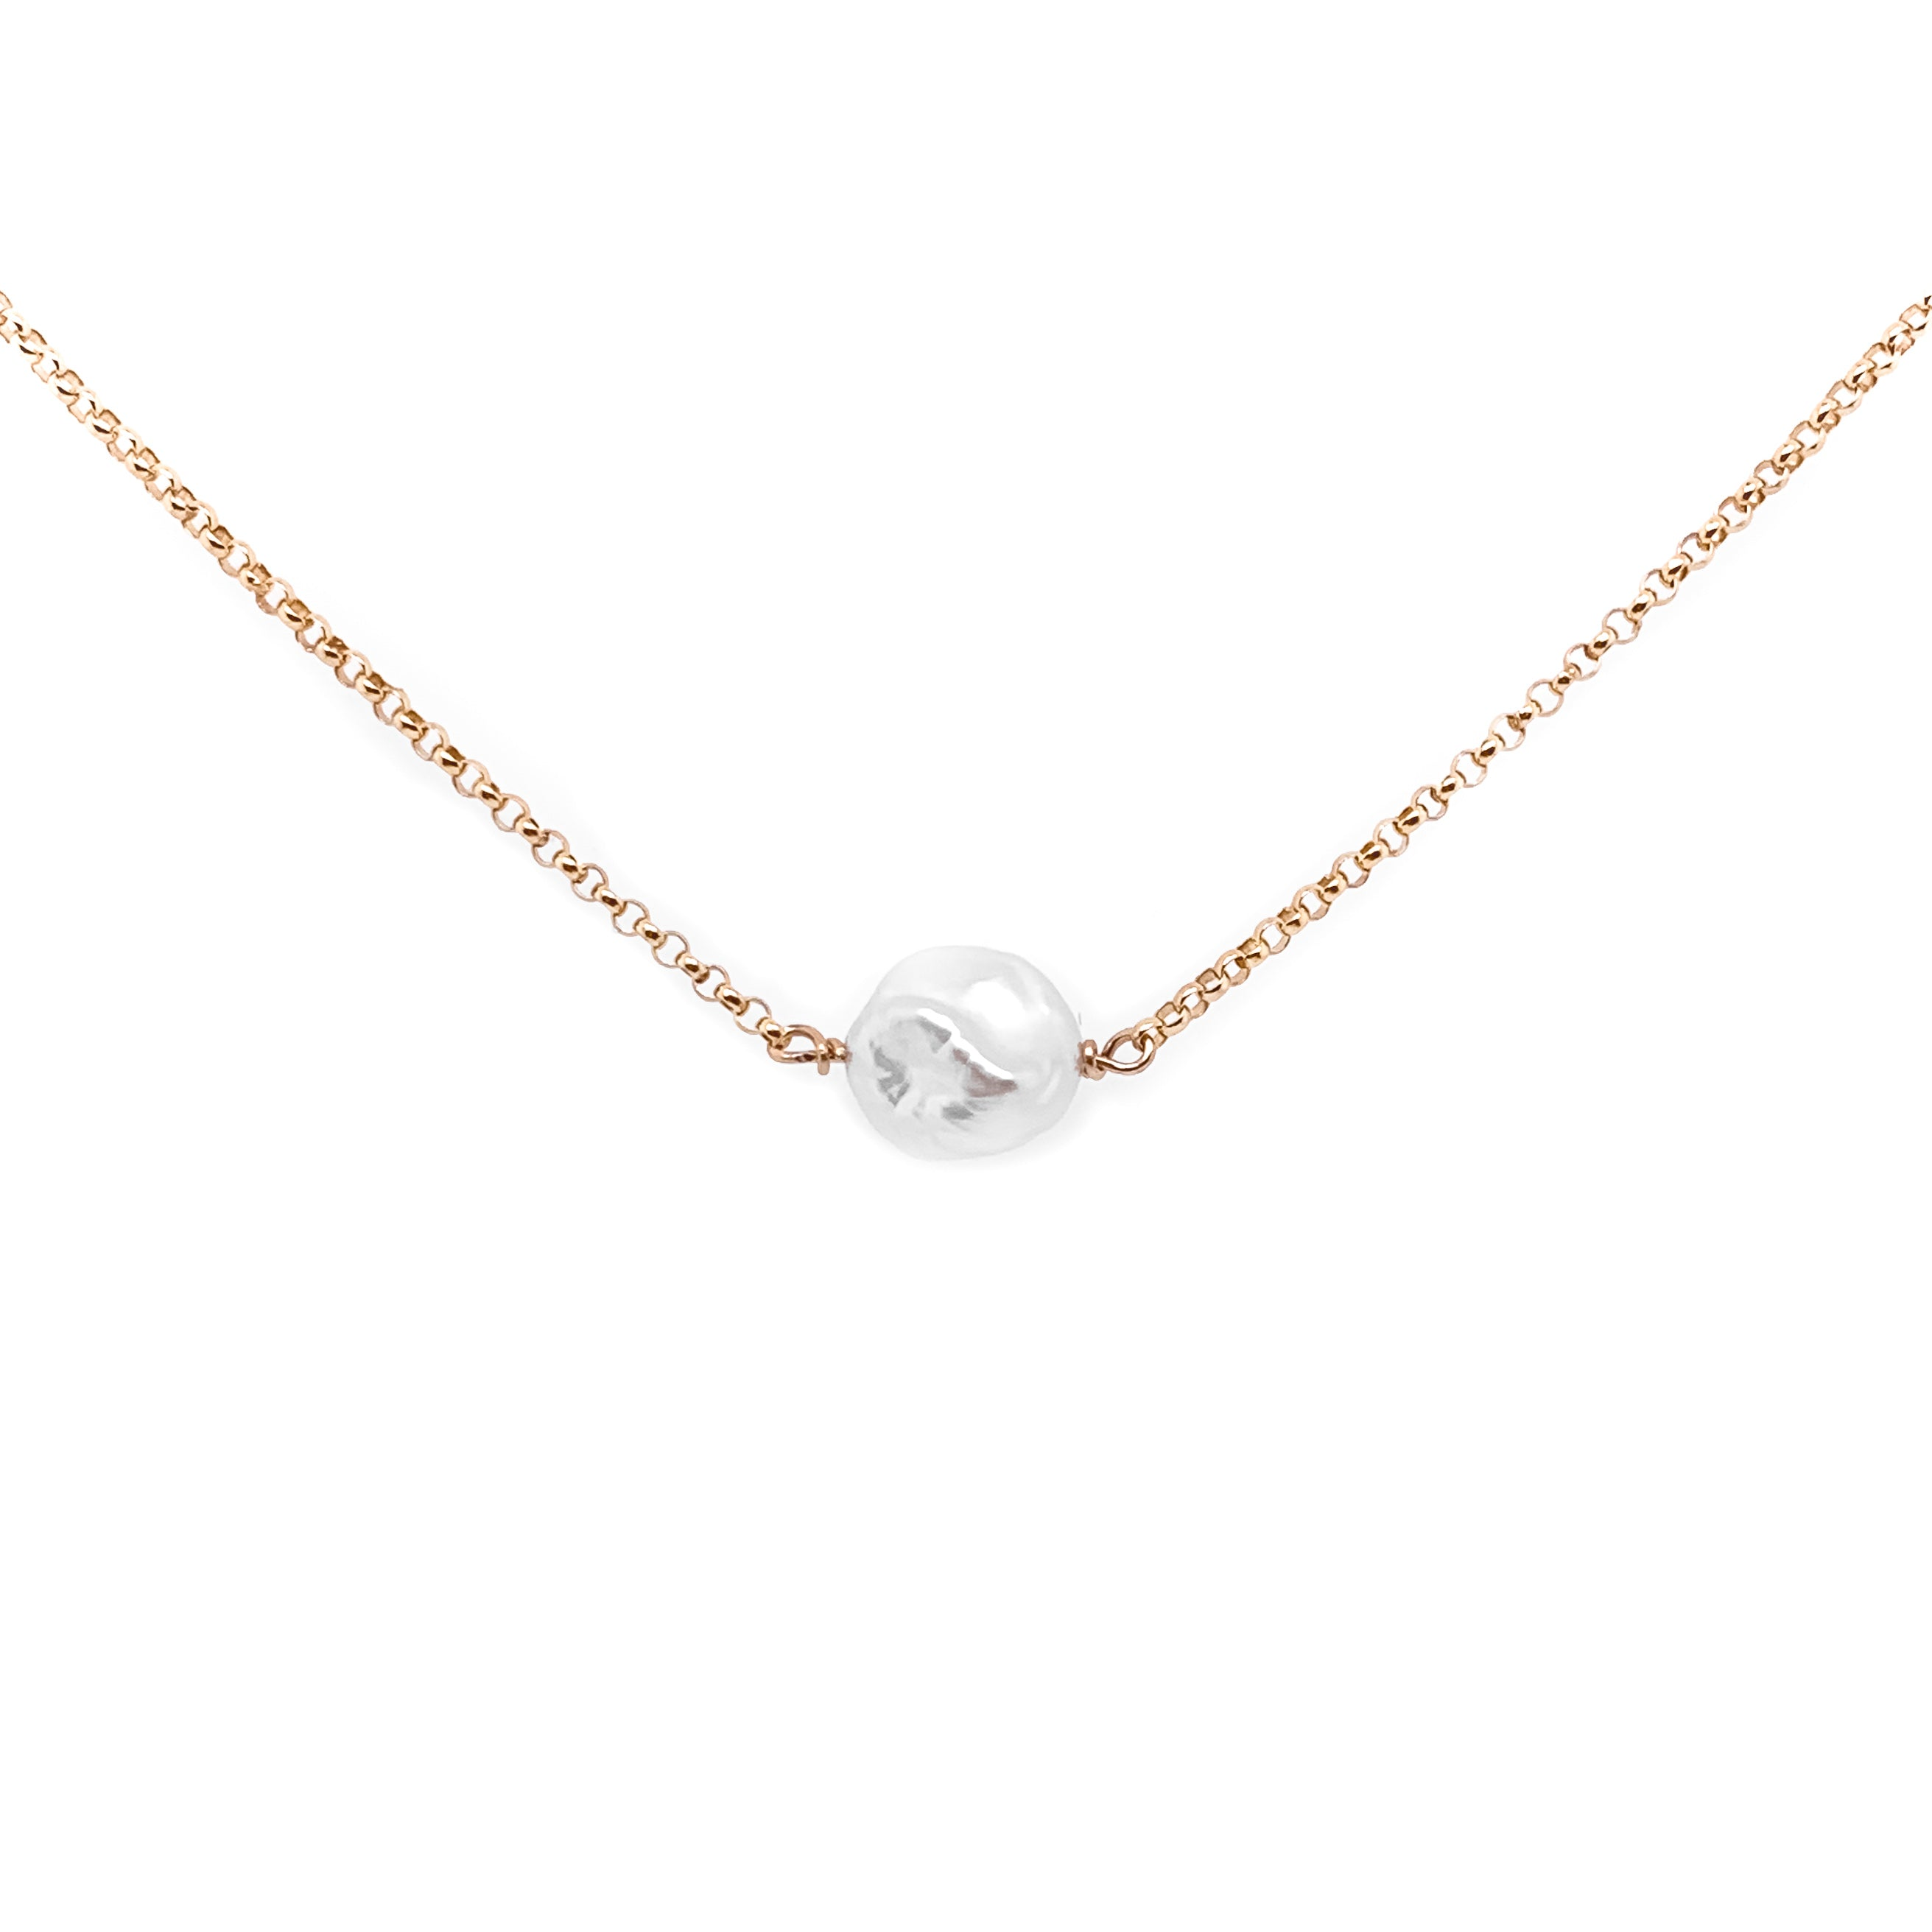 a small natural pearl with a gold chain on a white background